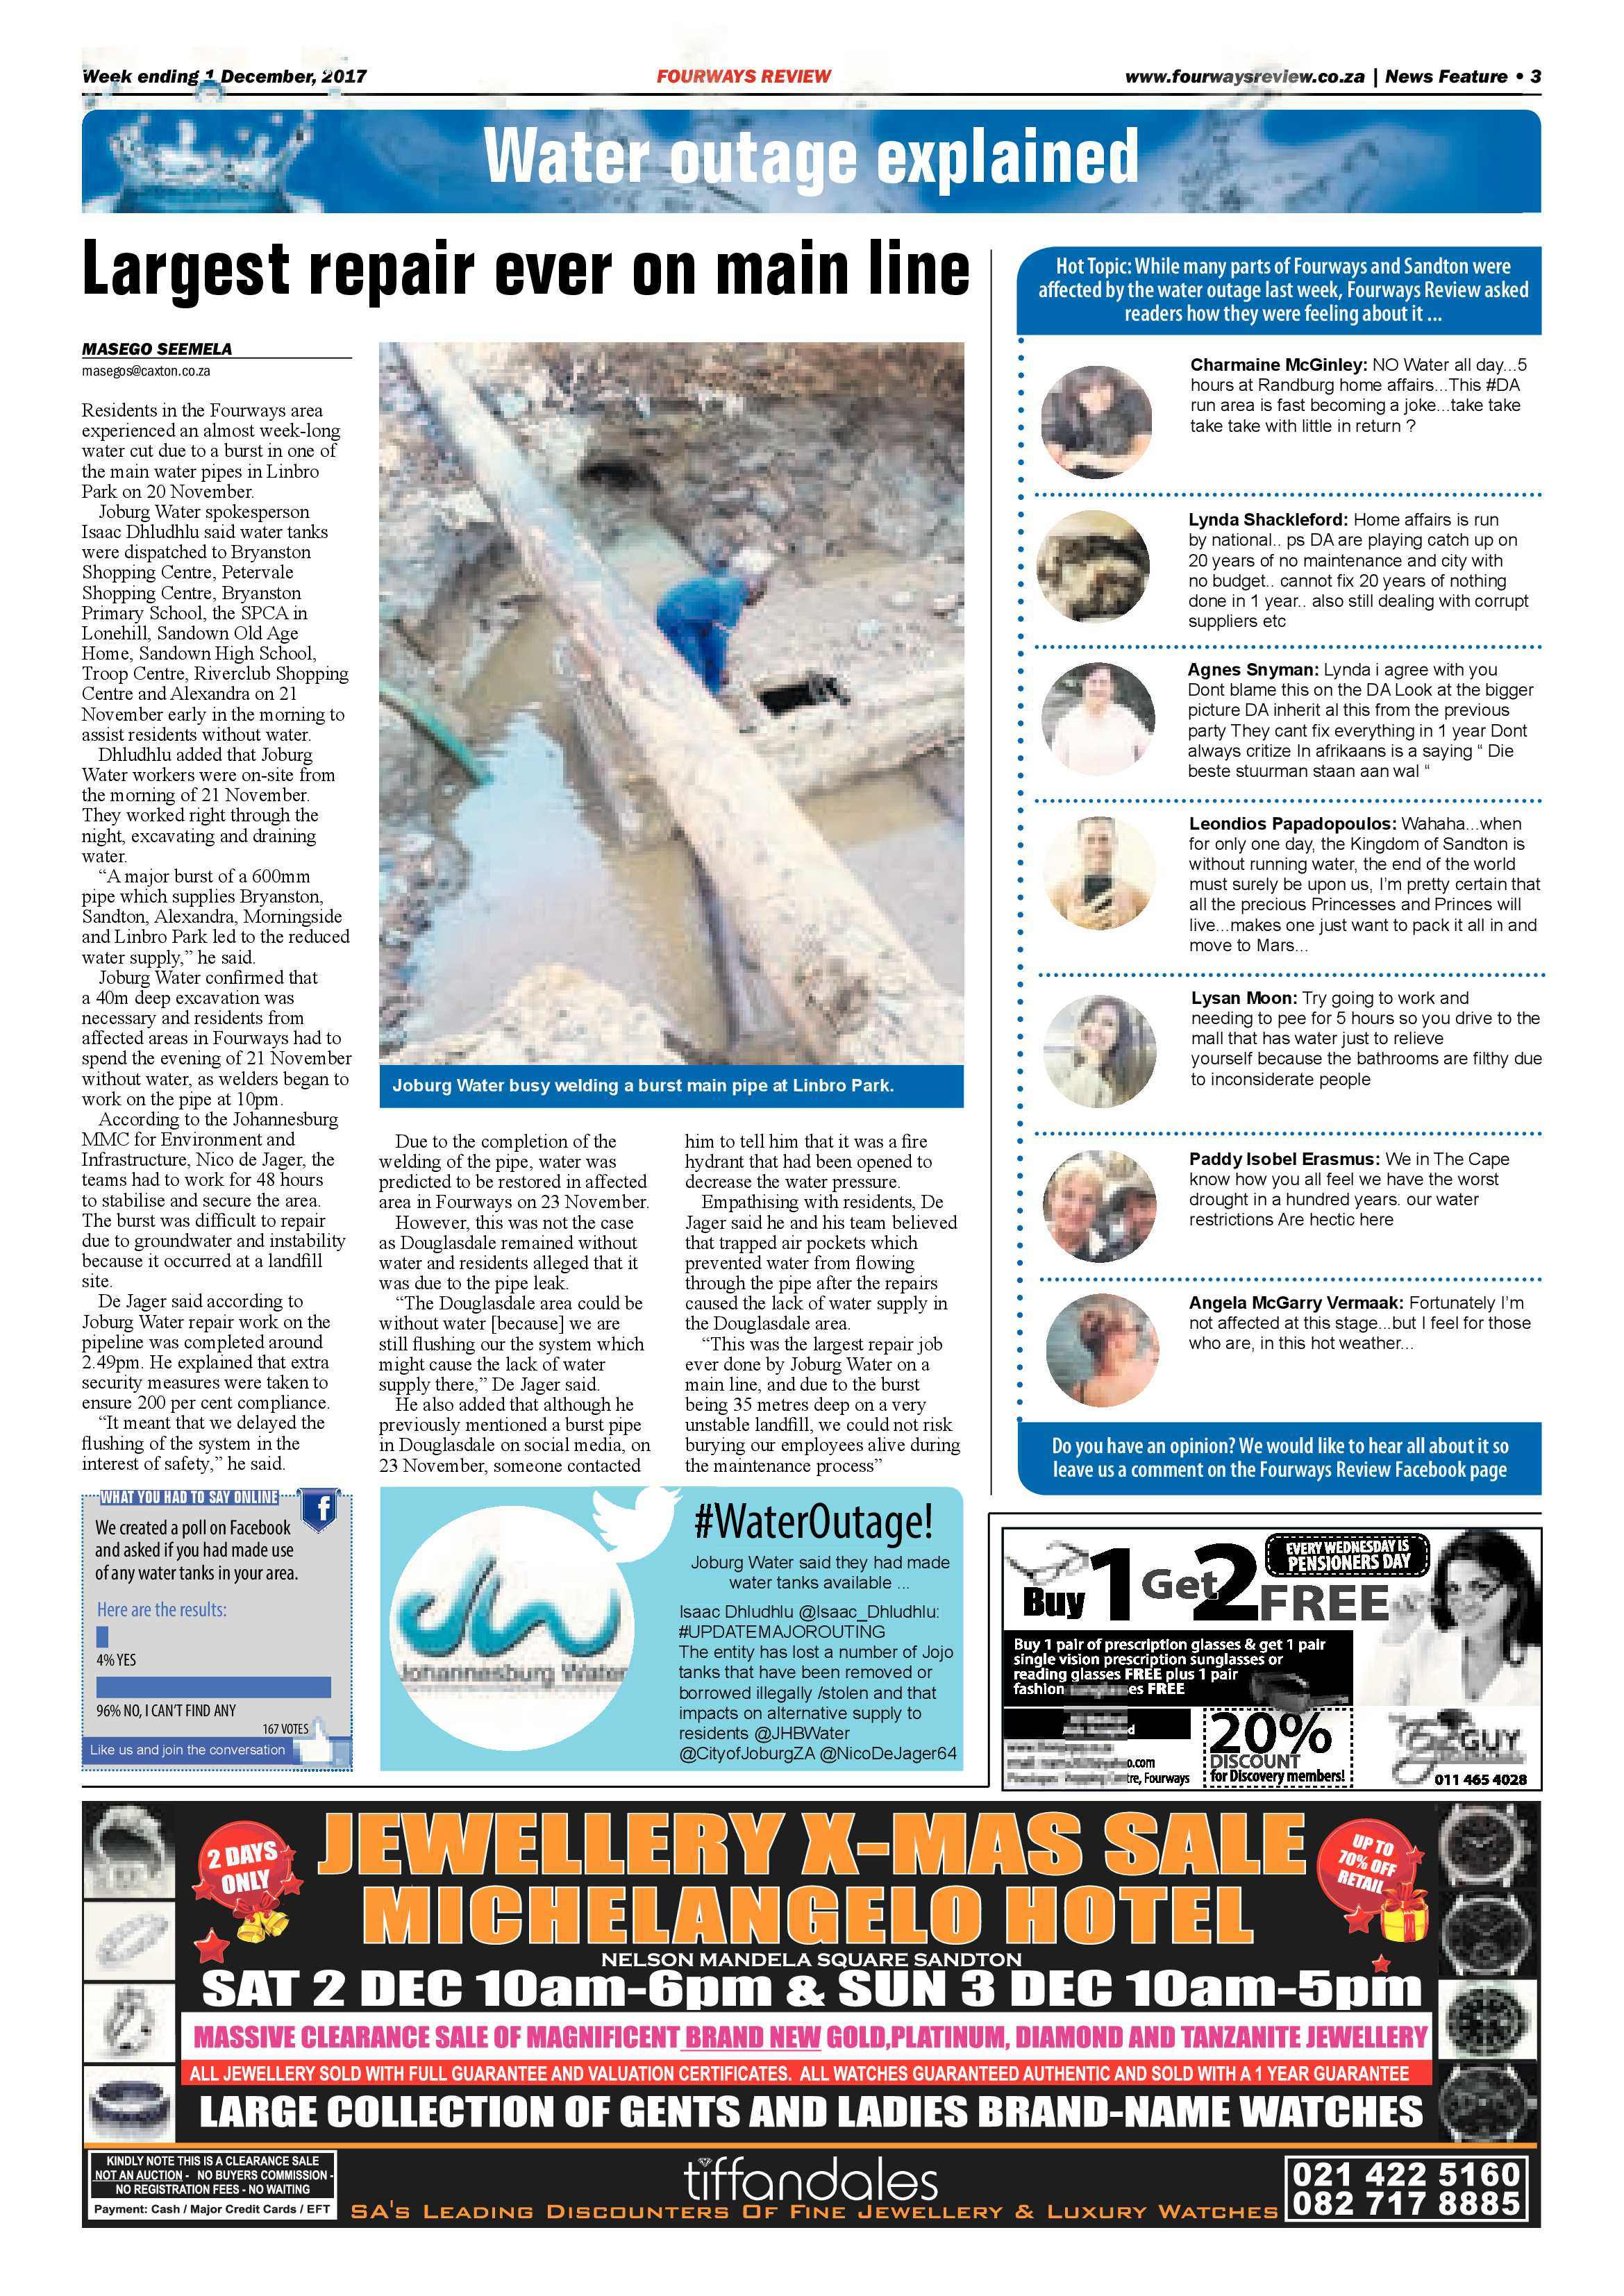 Fourways review 1 december fourways review fourways review 1 december epapers page 3 reheart Images